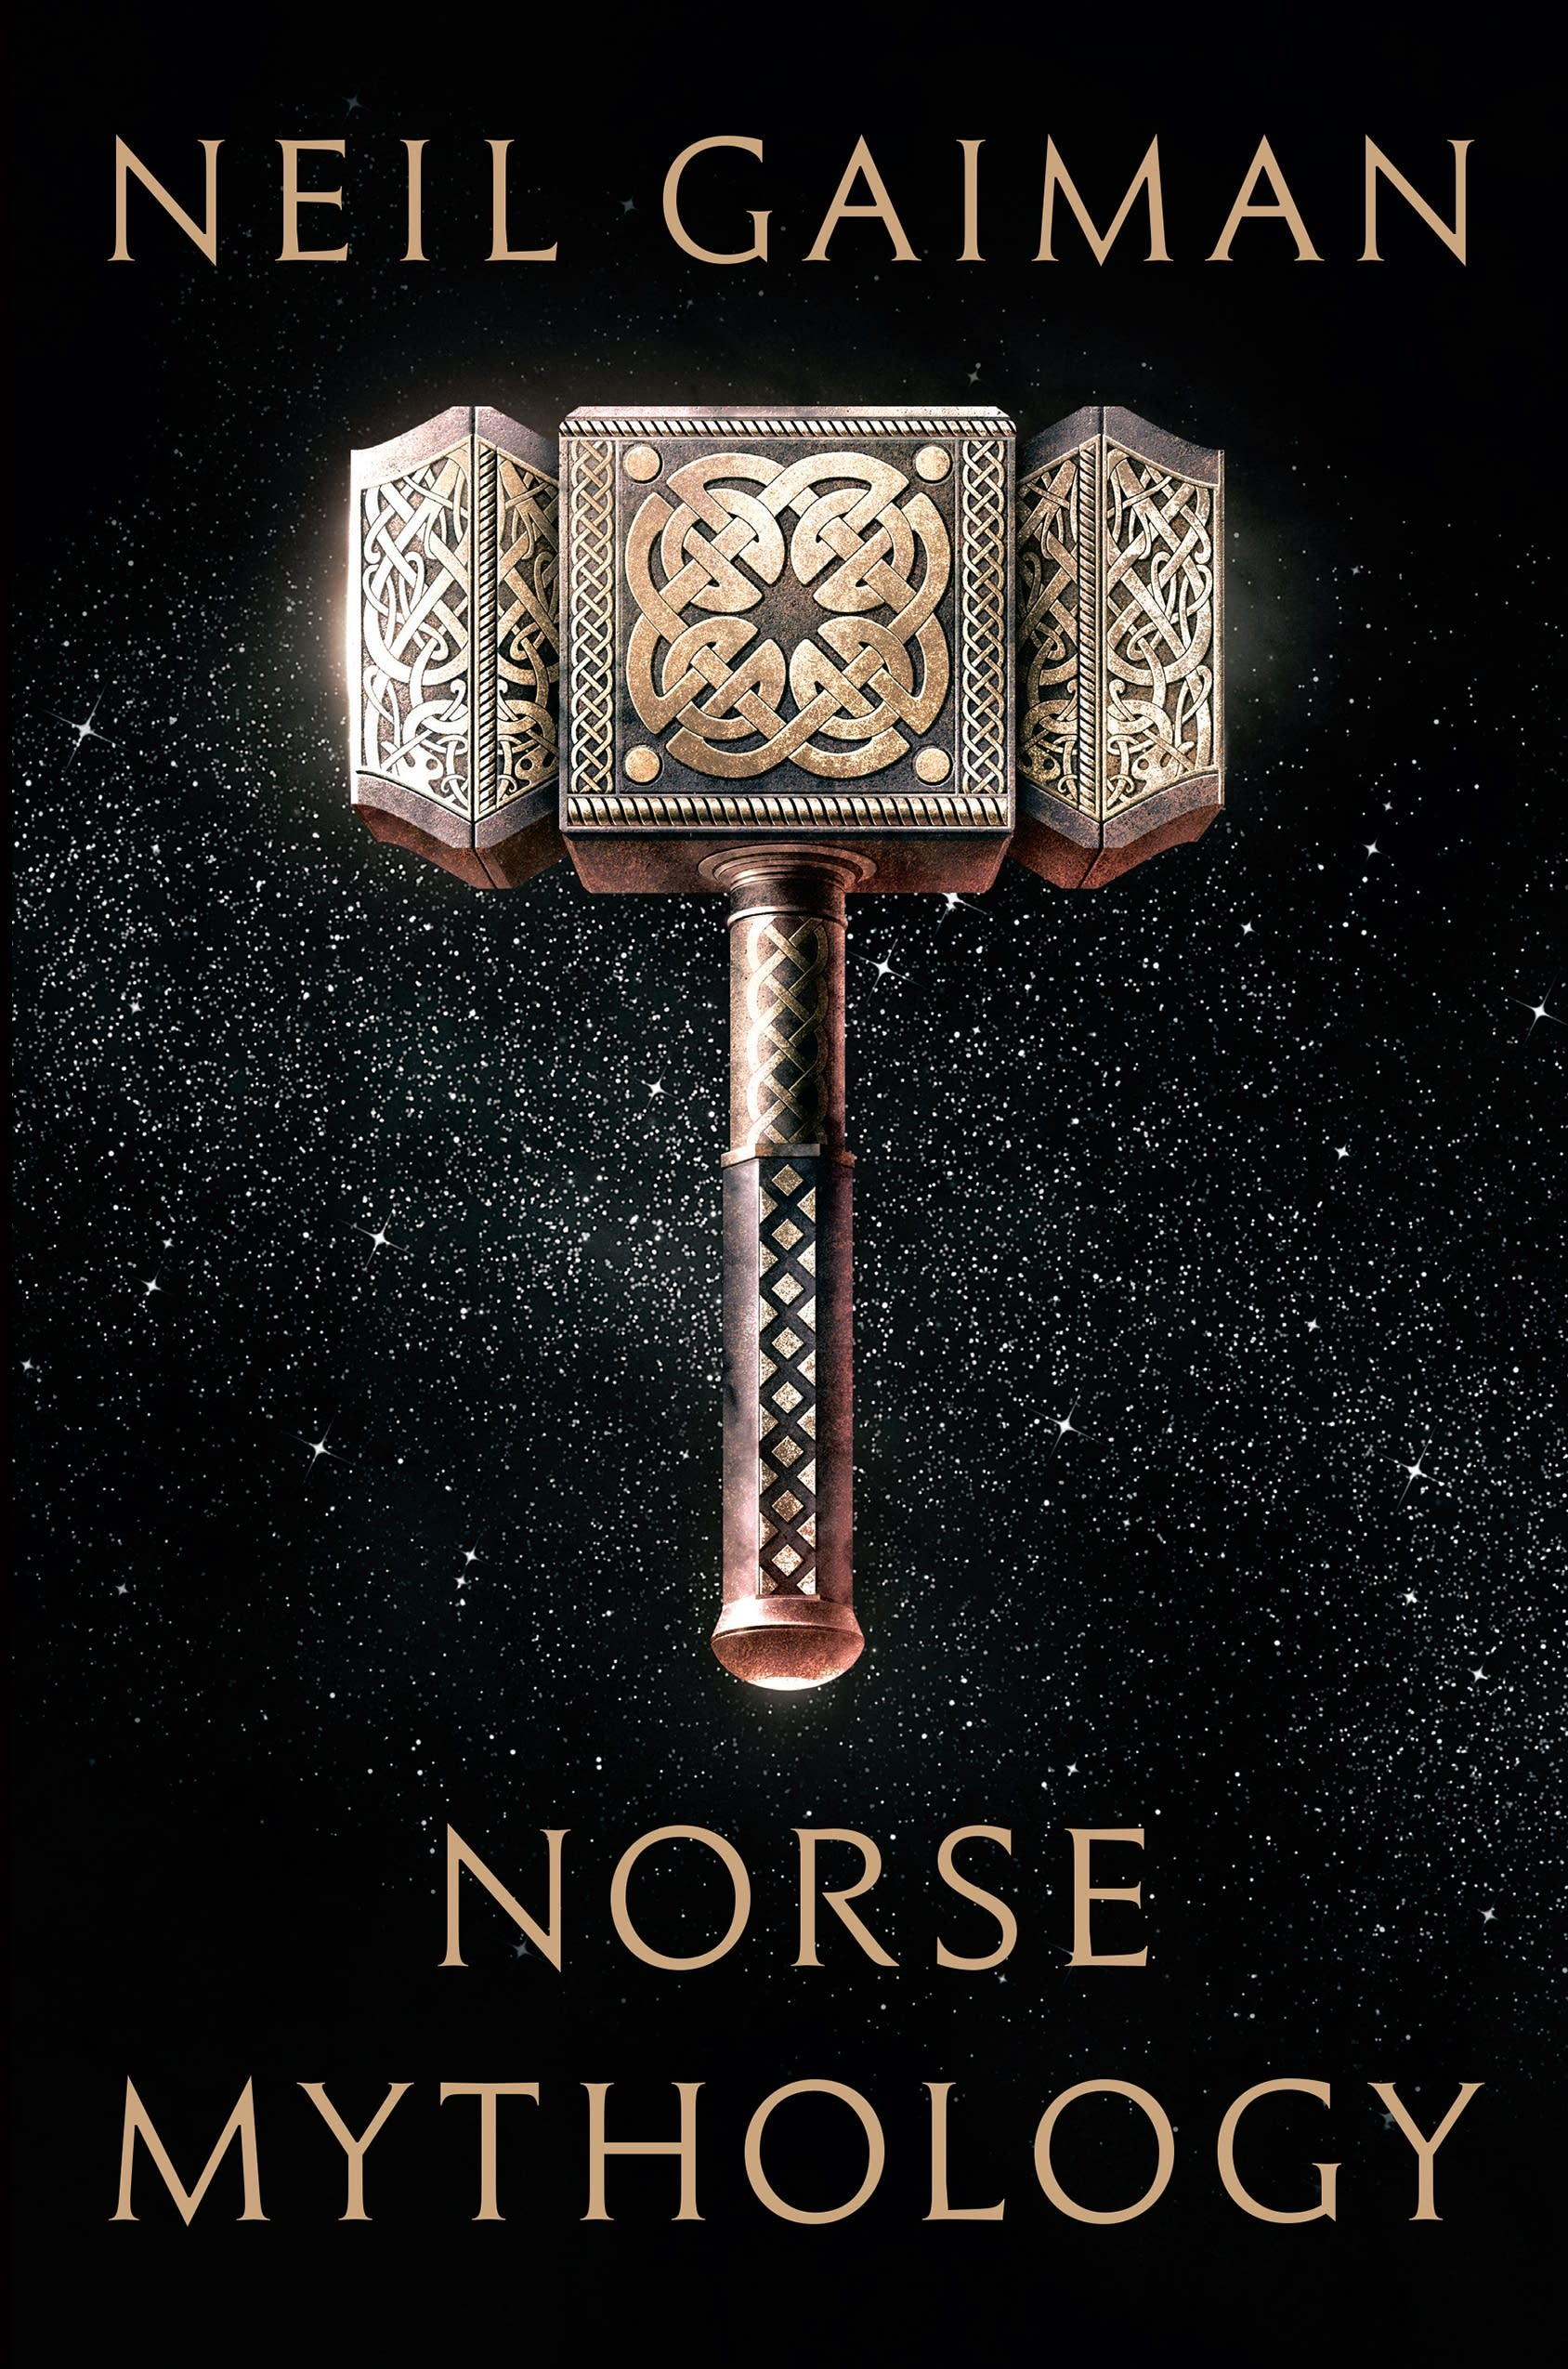 Neil Gaiman's 'Norse Mythology'